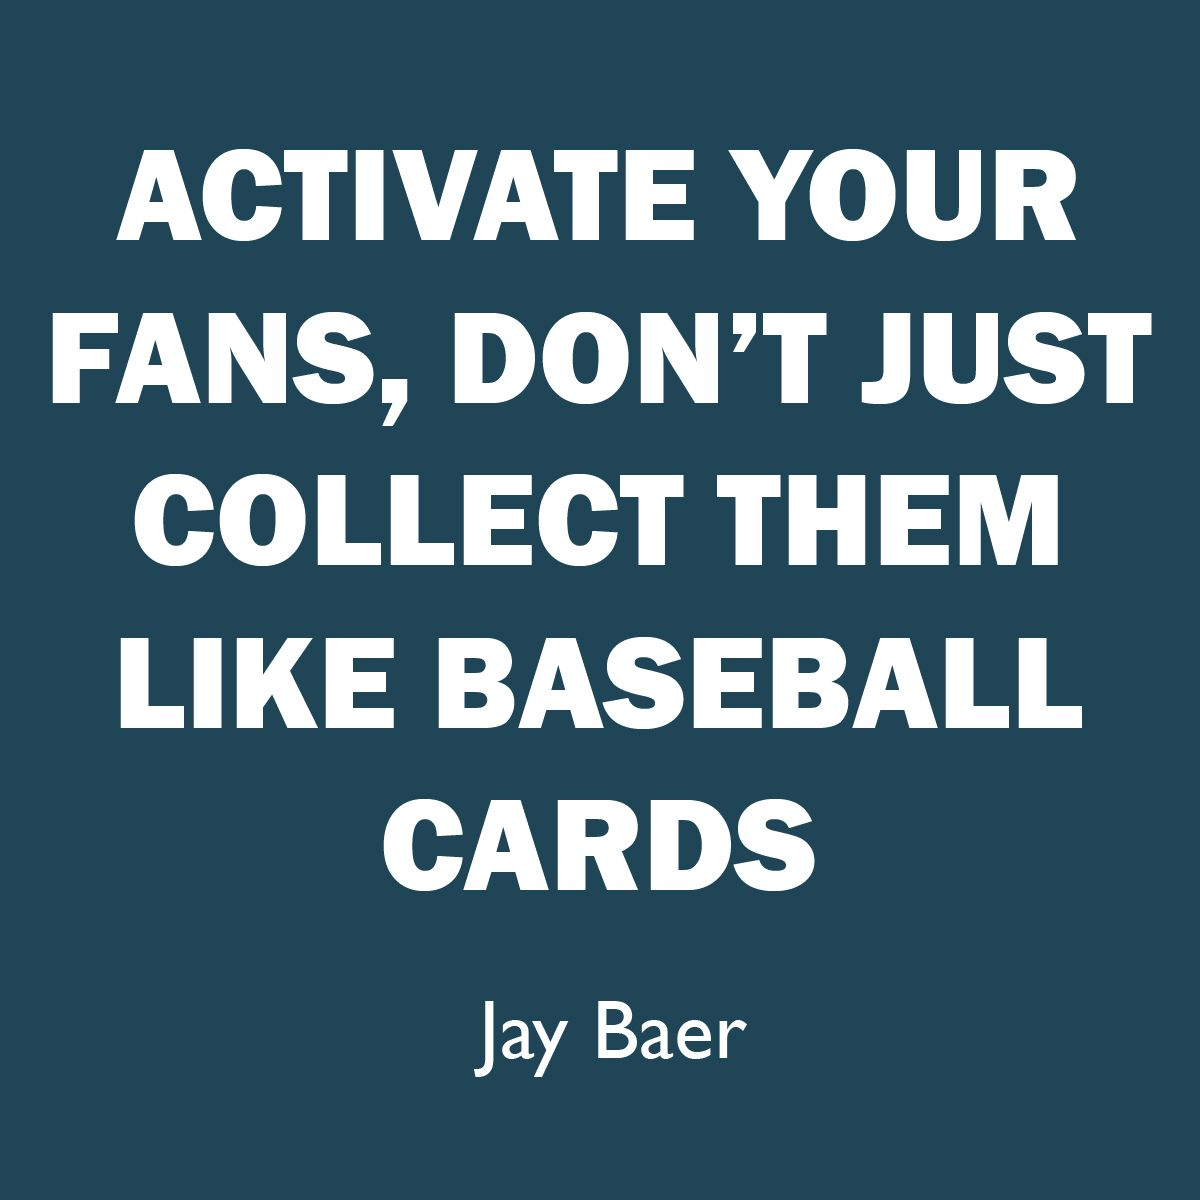 Activate Your Fans Dont Just Collect Them Like Baseball Cards